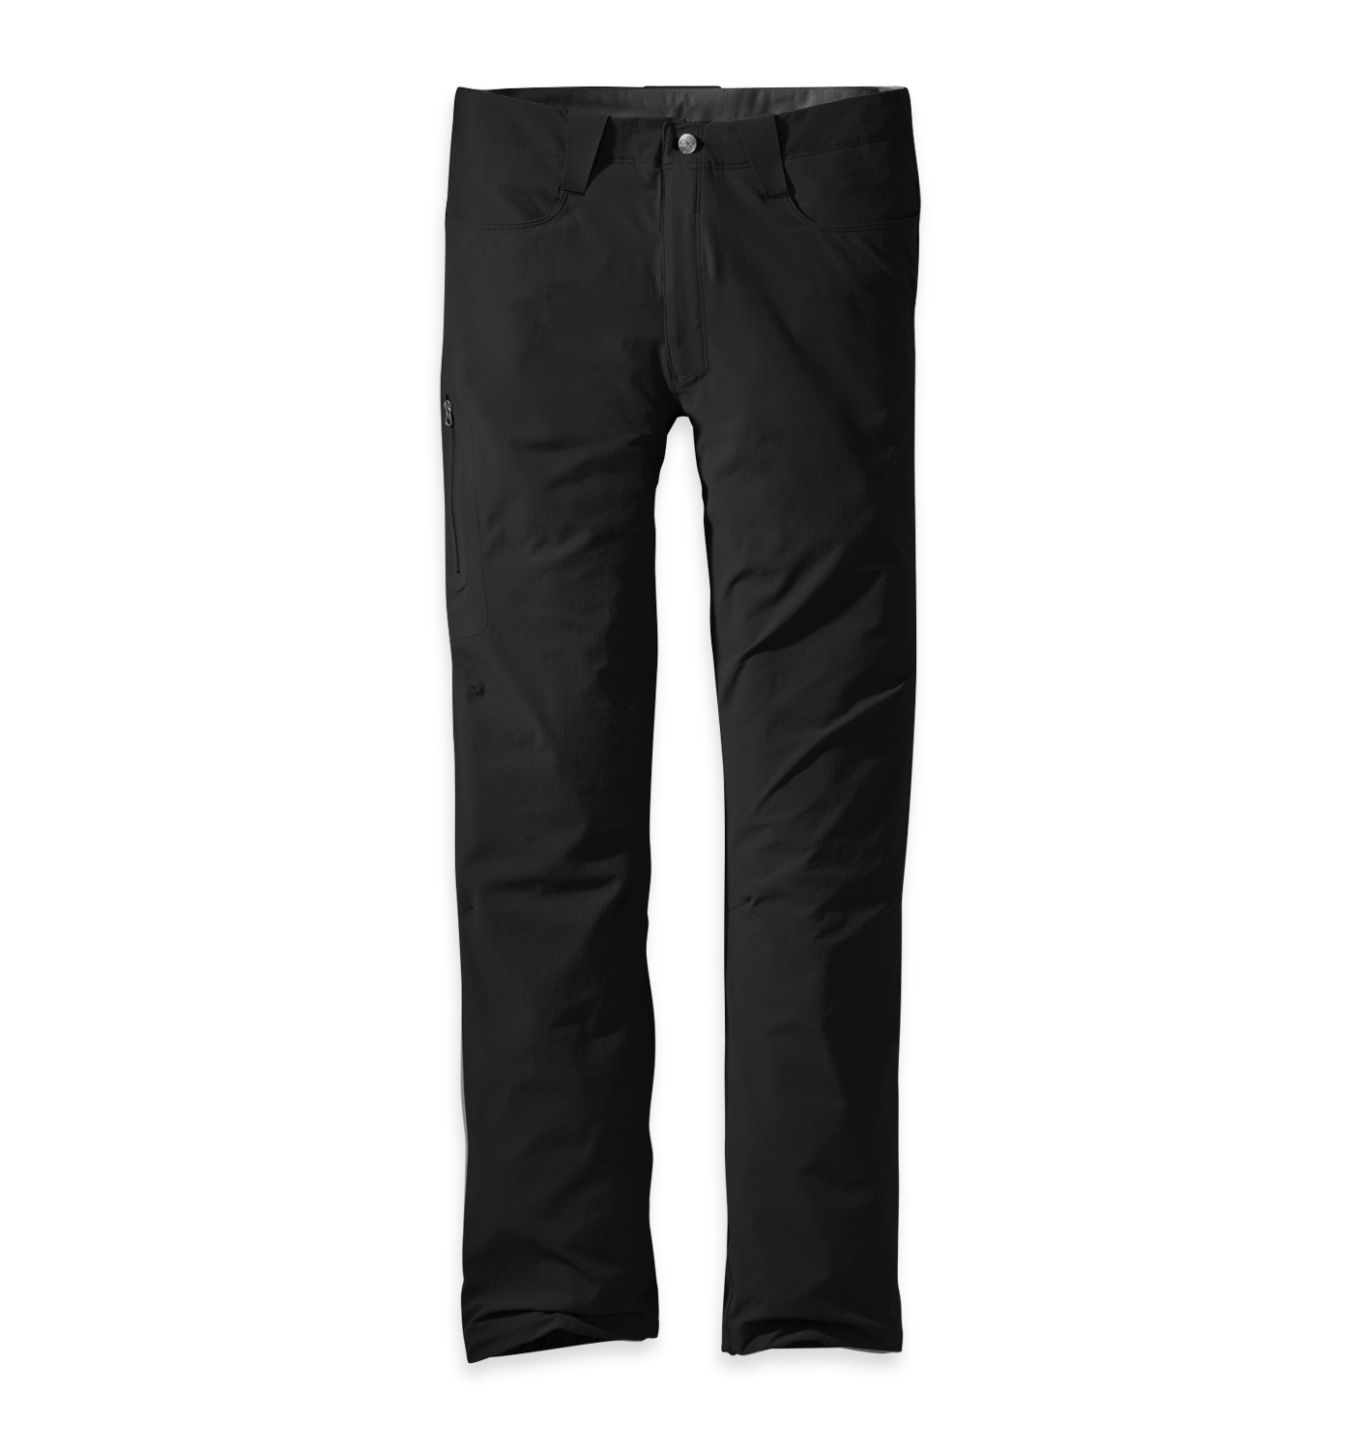 Outdoor Research Men's Ferrosi Pants black-30